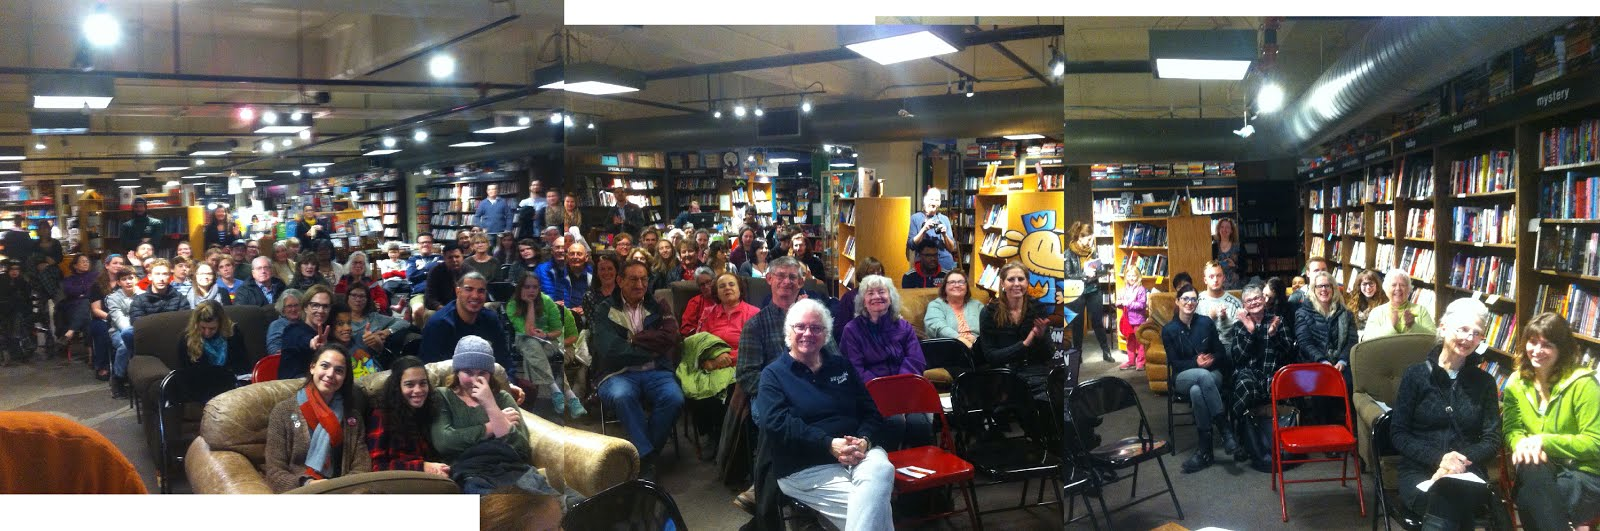 My latest book event